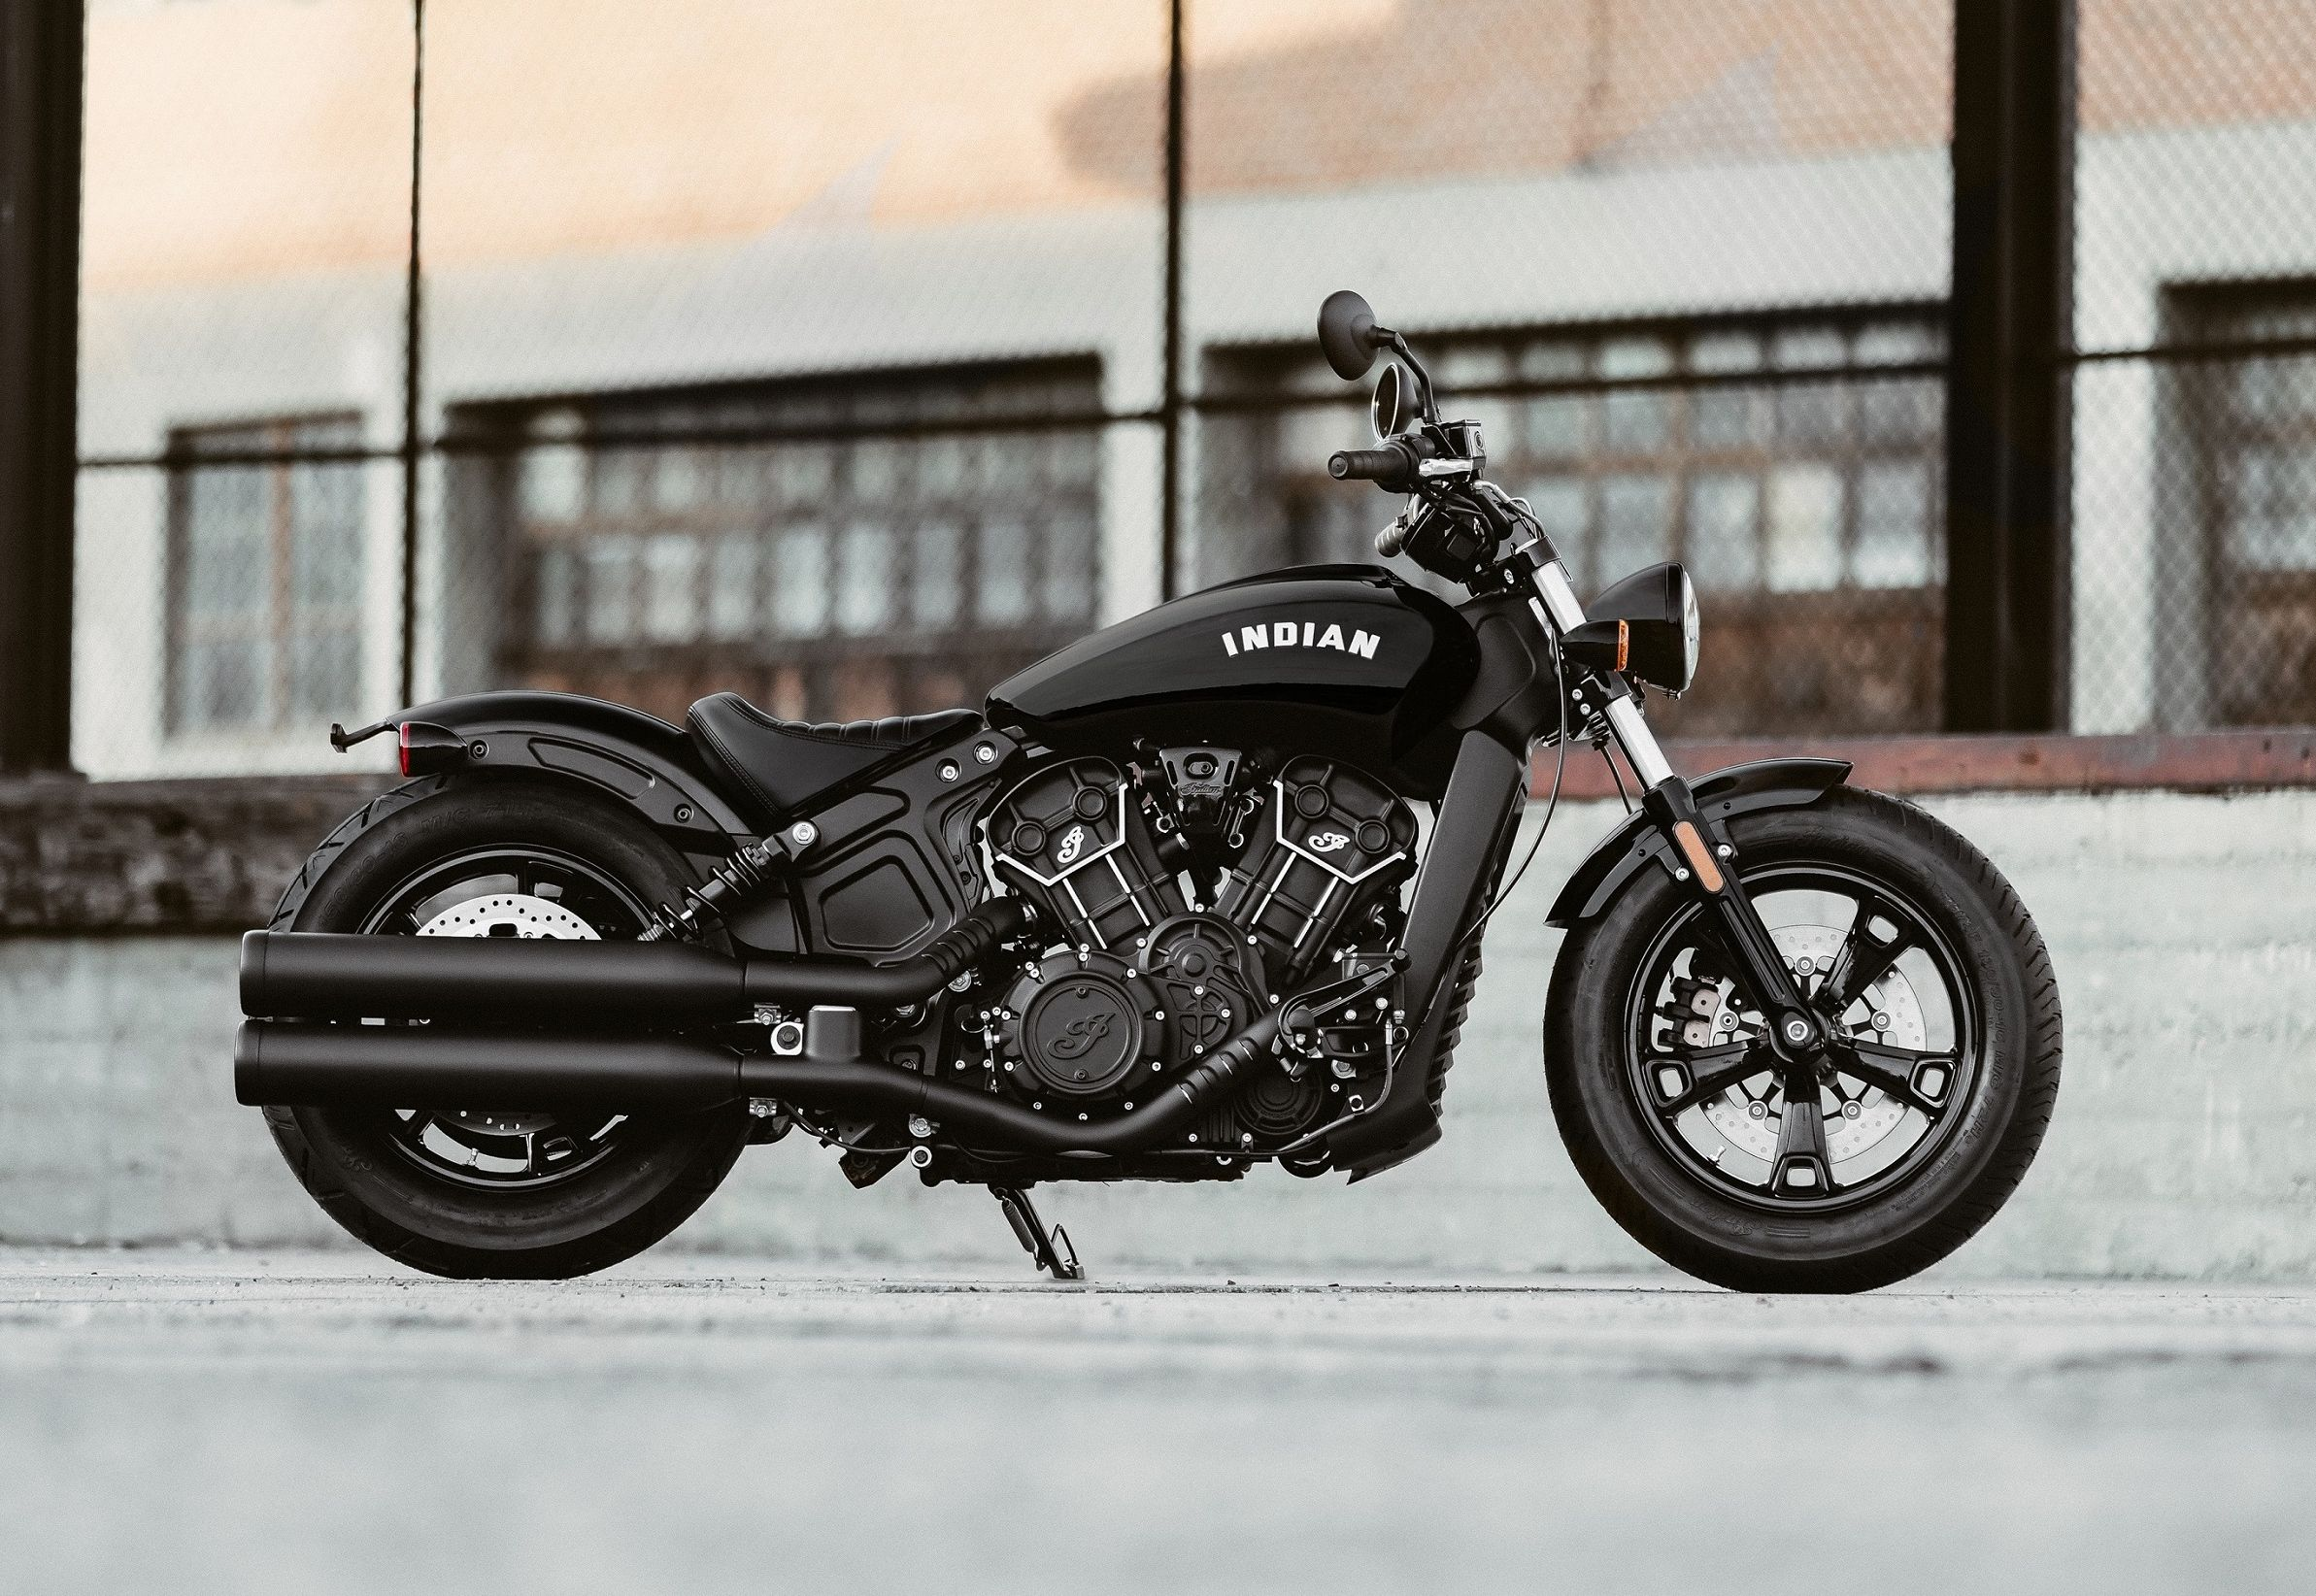 2020 Indian Scout Bobber Sixty First Look Cycle World